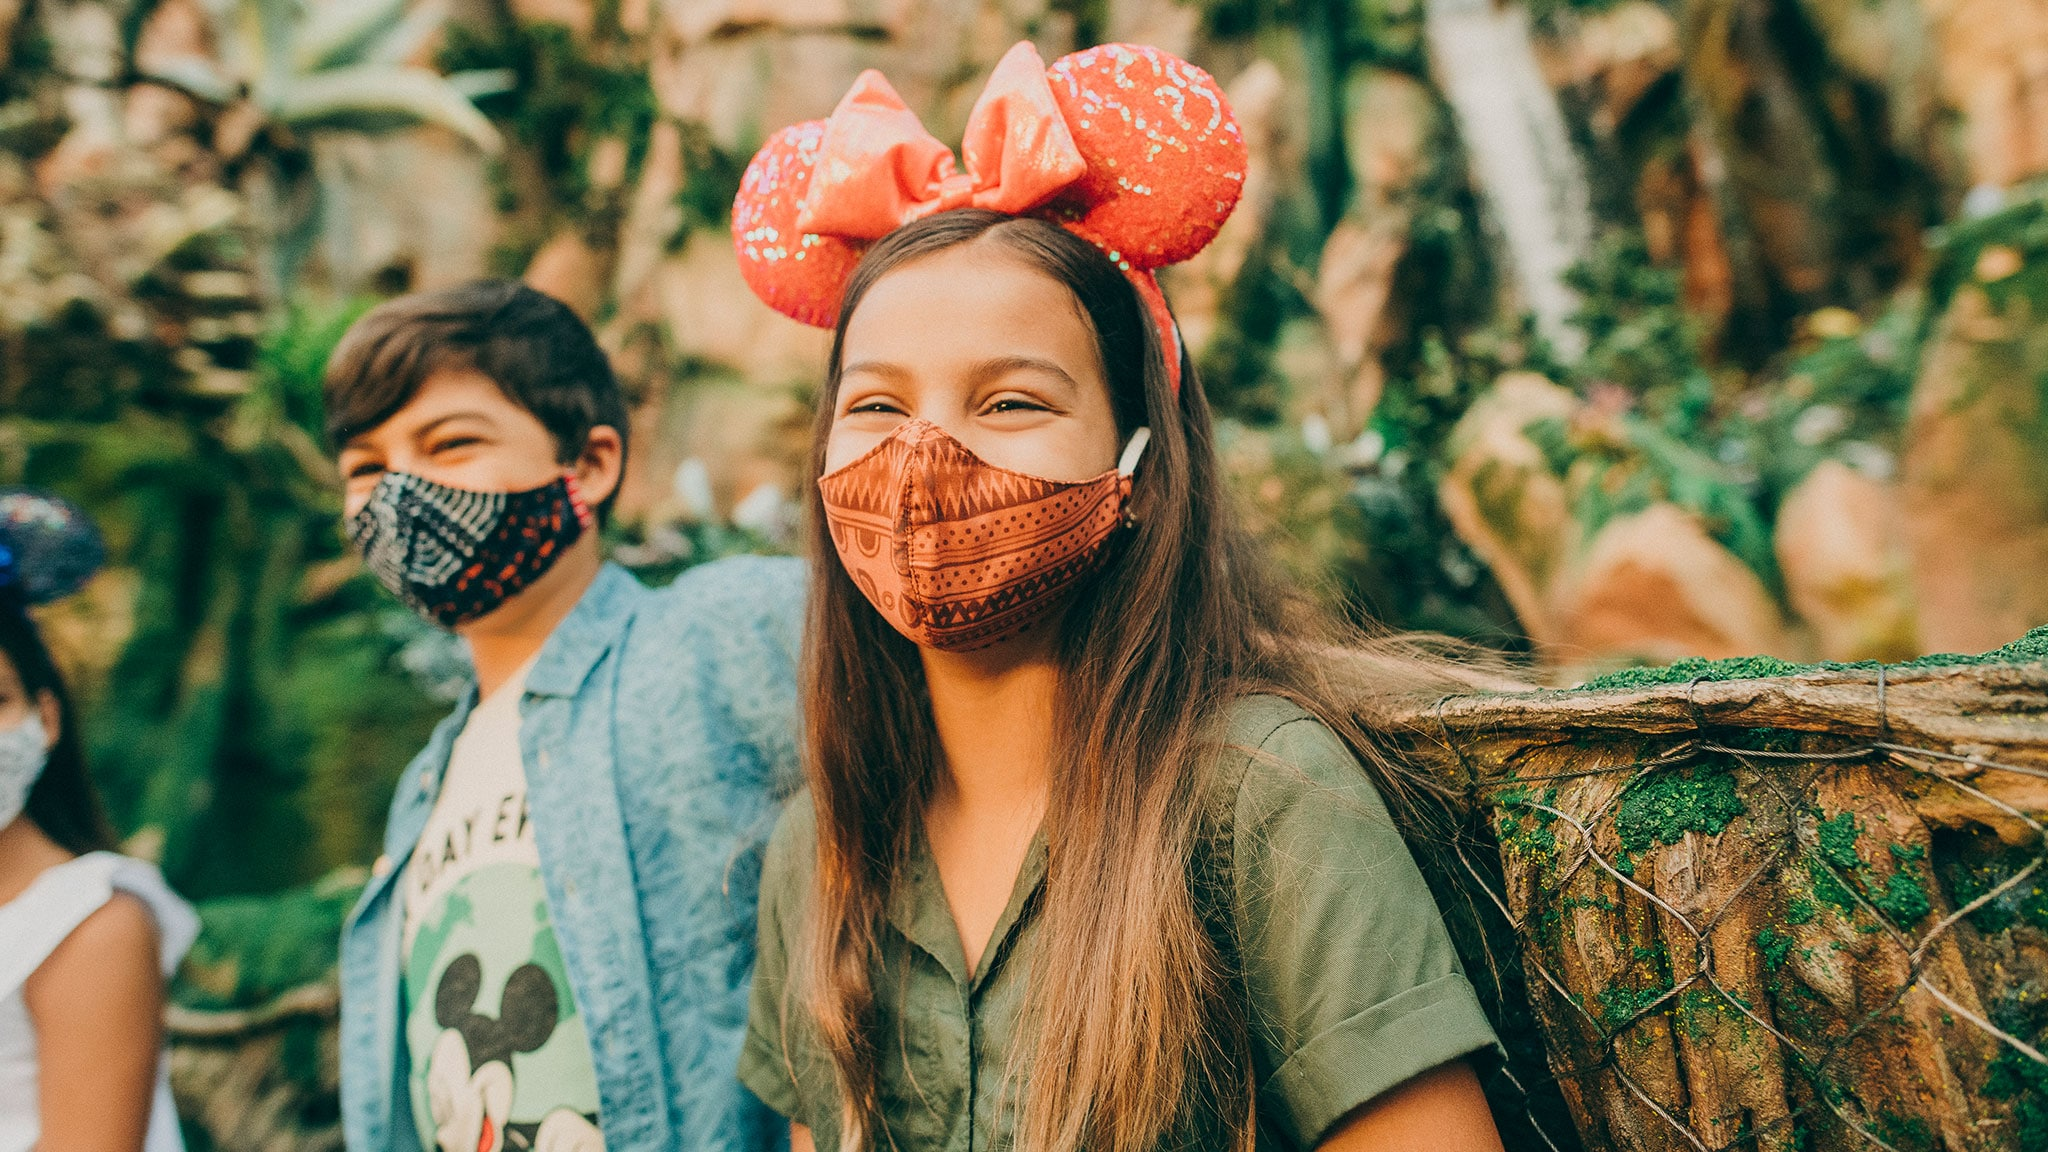 A young girl wearing a mask and Minnie Mouse sequined ear headband with a bow sits next to a young boy also wearing a mask